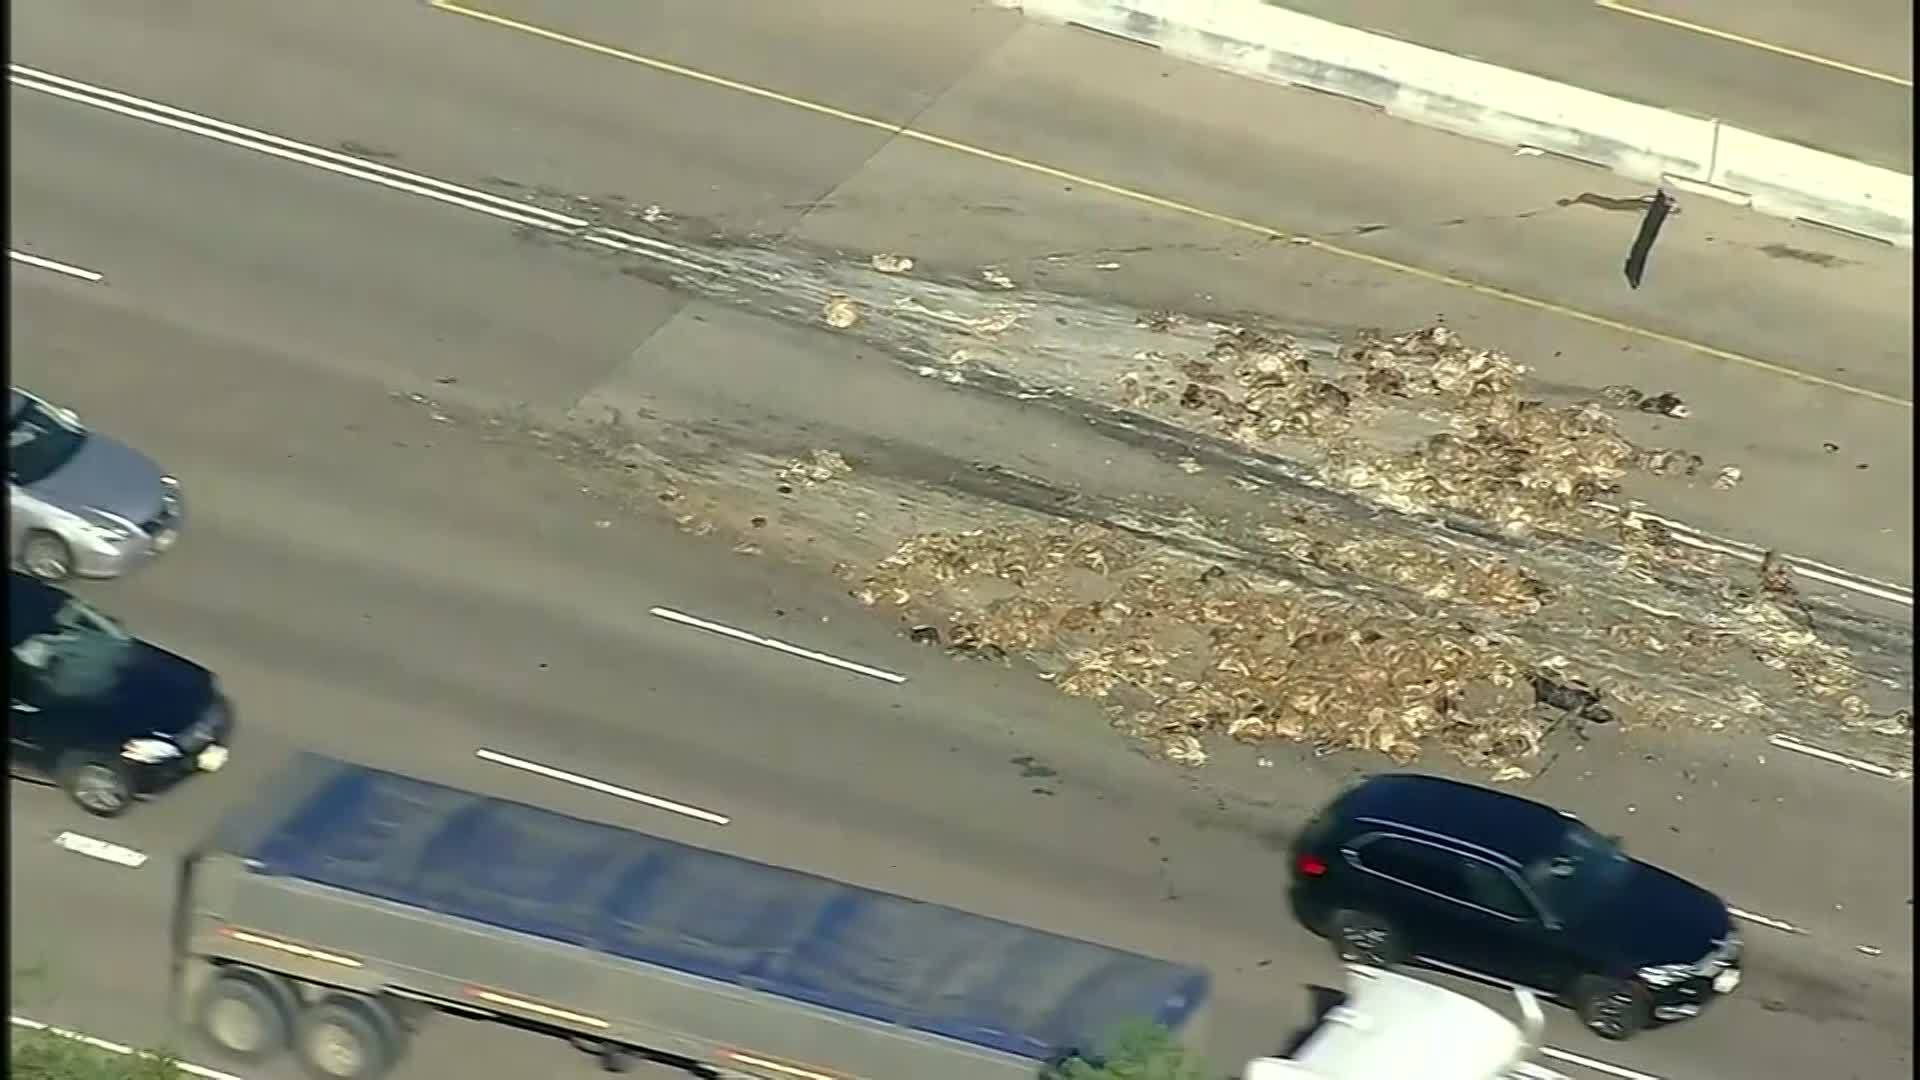 Animal remains spread over Texas road